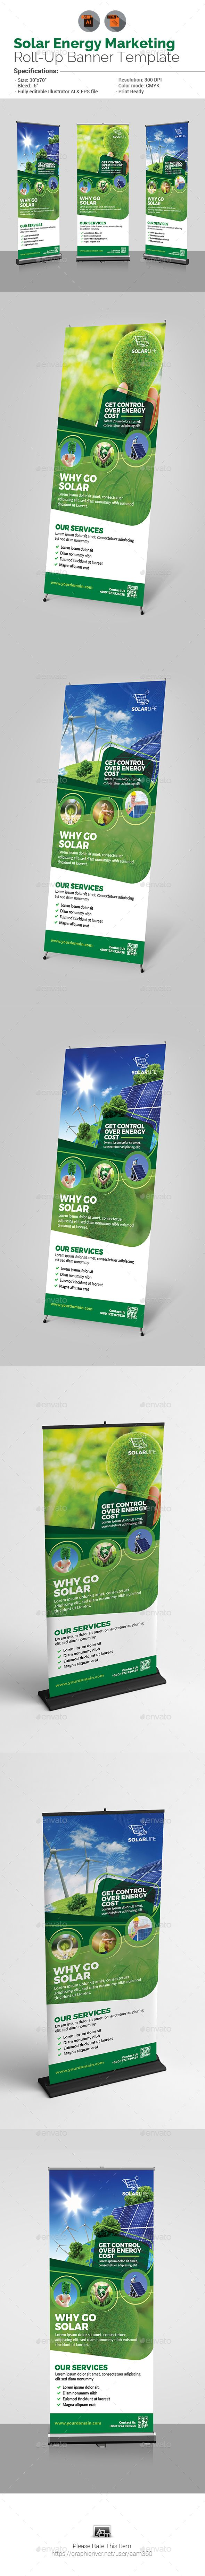 Solar Energy #Roll-Up #Banner - #Signage Print Templates Download here: https://graphicriver.net/item/solar-energy-rollup-banner/19709955?ref=alena994